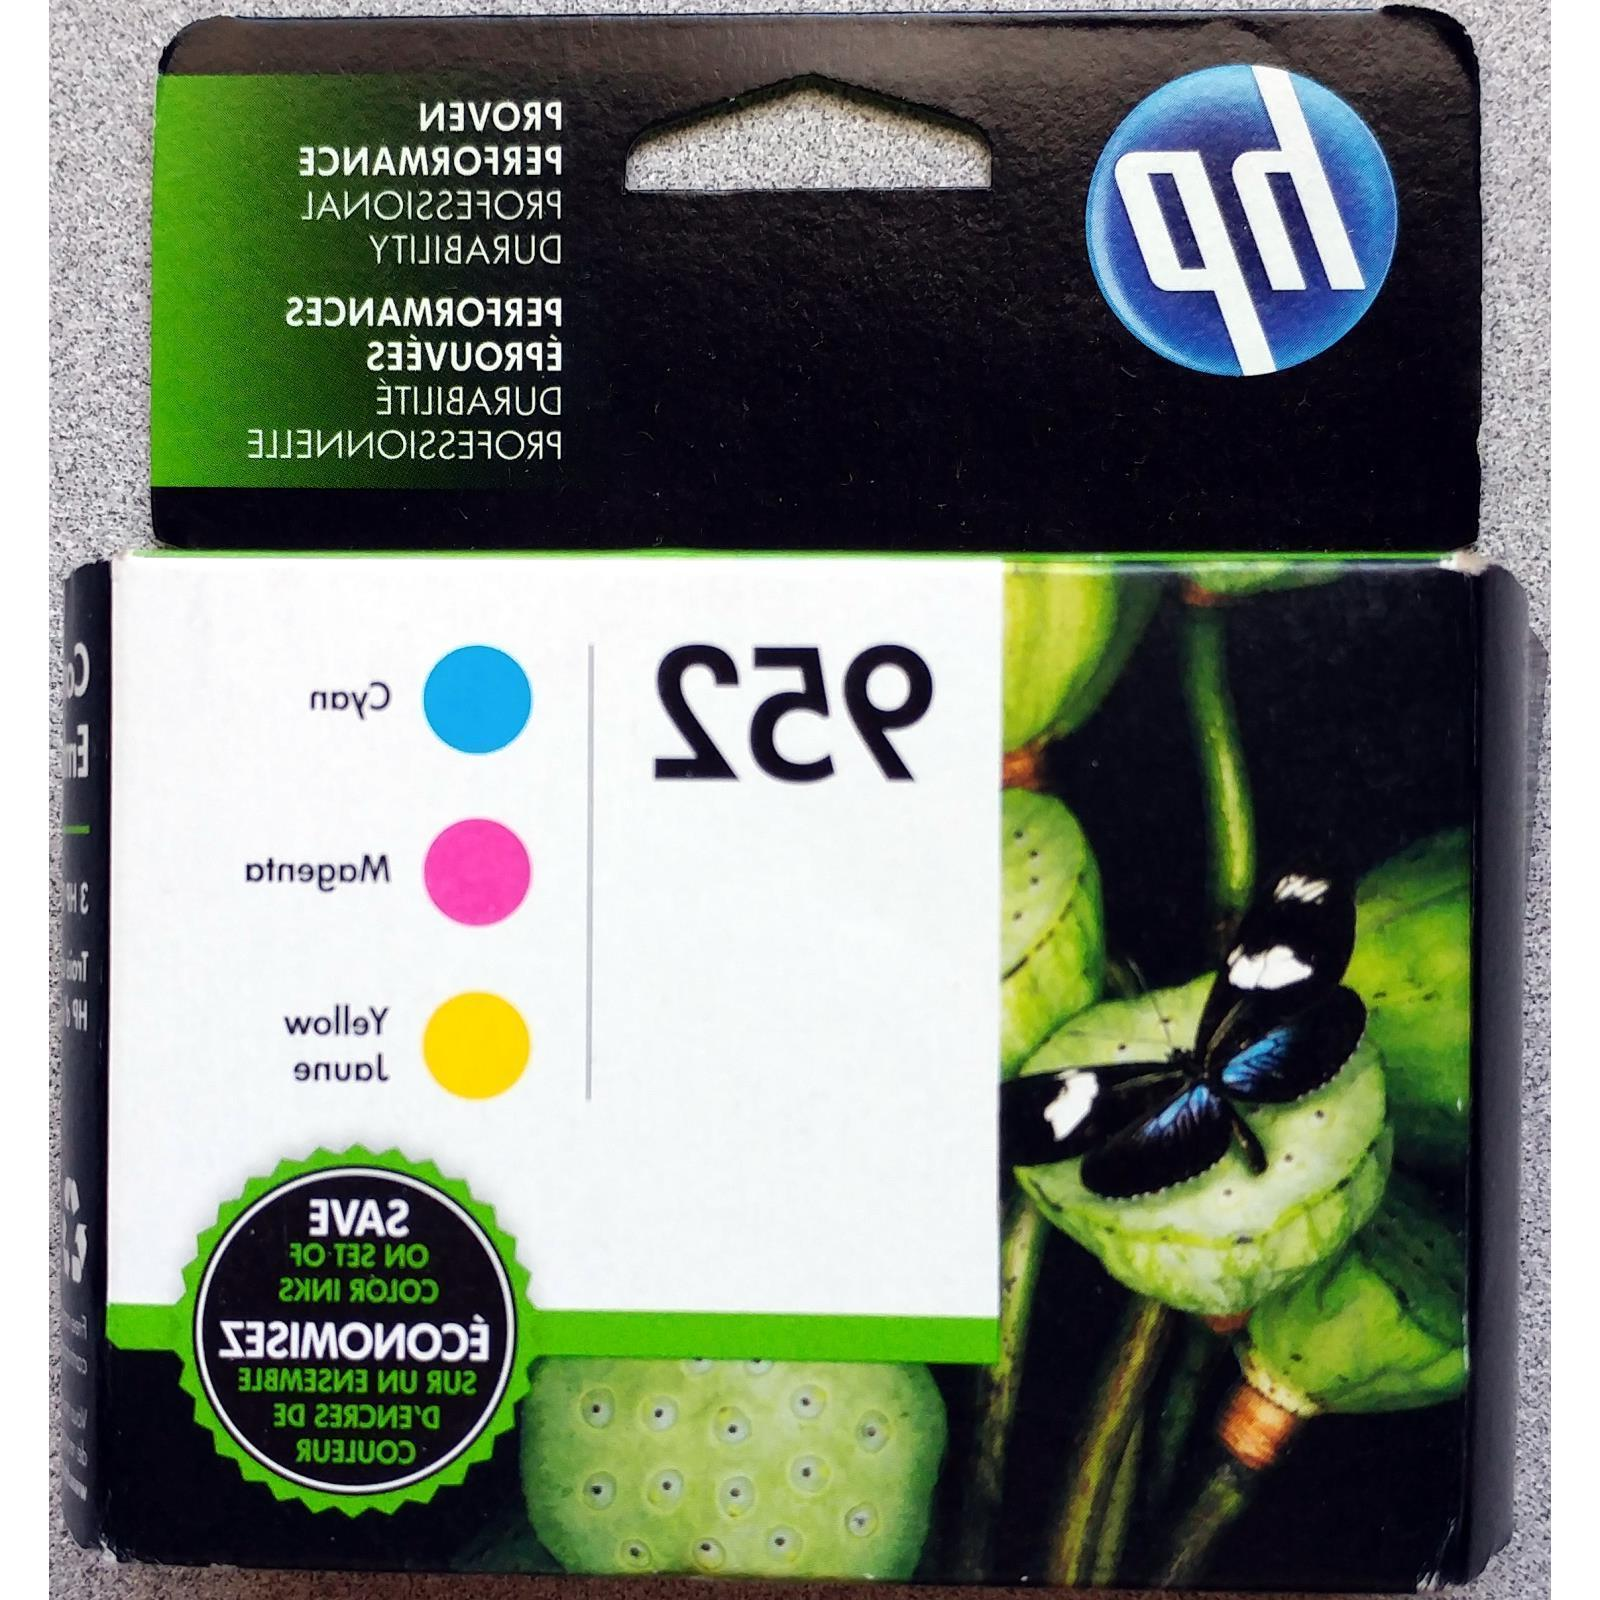 3-PACK HP 952 Color Ink for OFFICEJET PRO 8710 8720